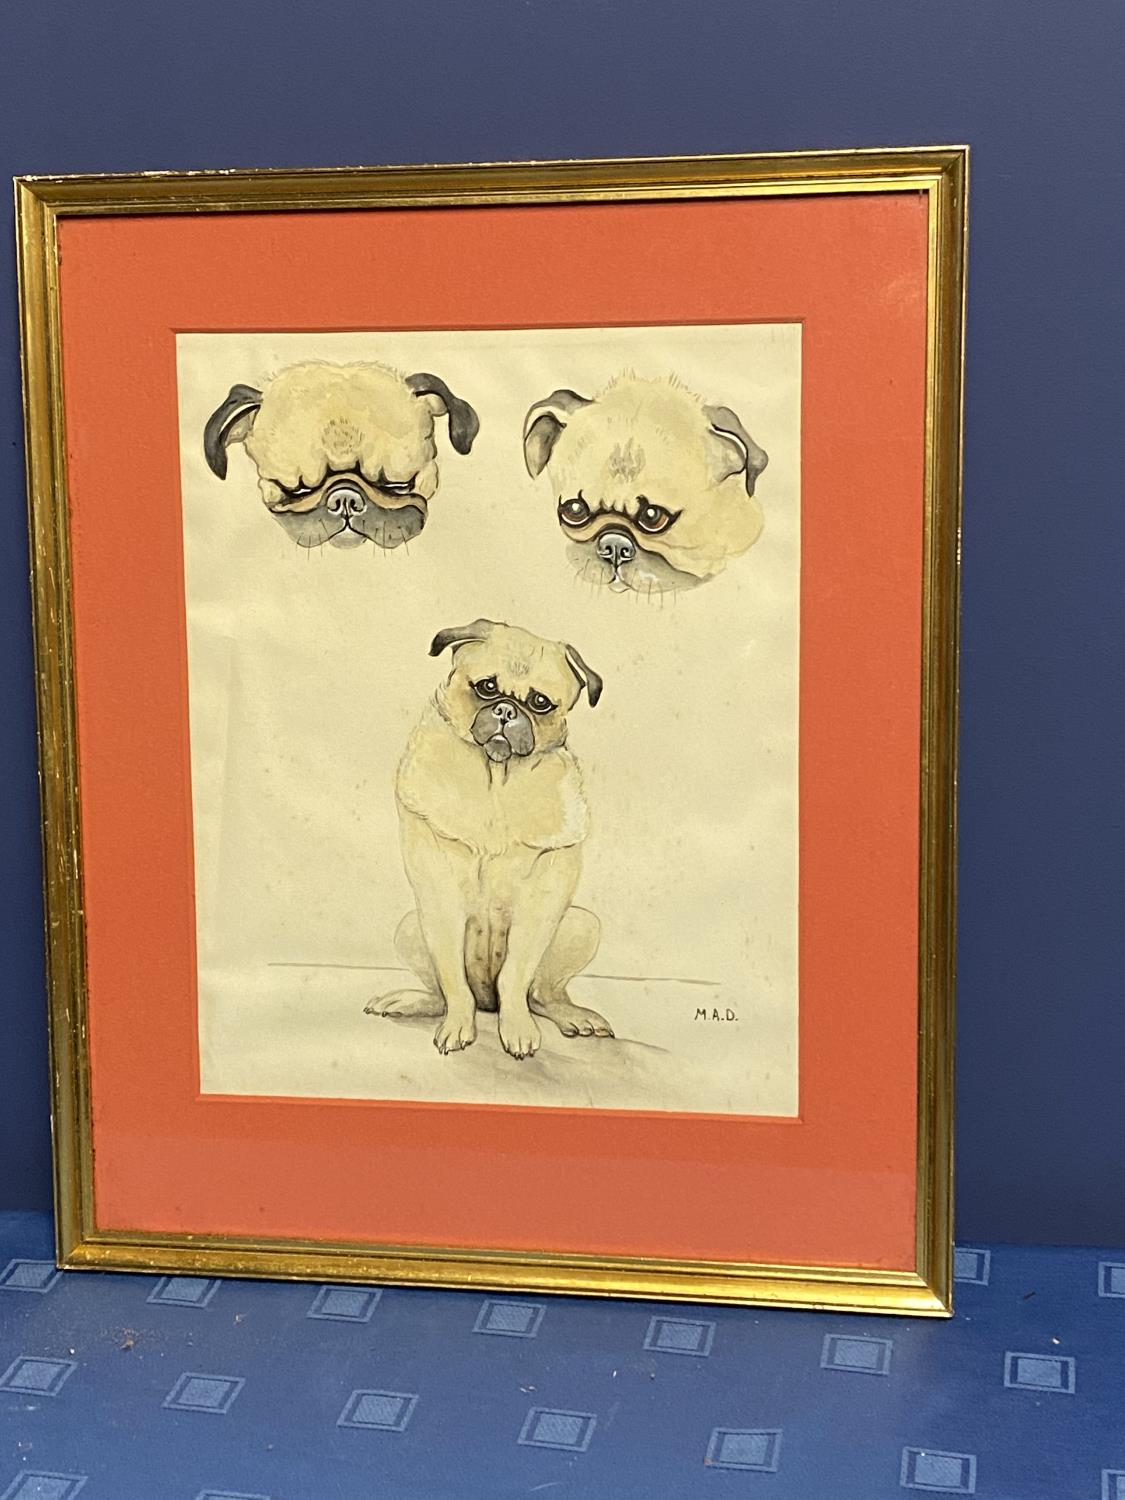 Framed and glazed ink & pencil/mixed media study of Pug dogs, signed lower right MAD, overall size